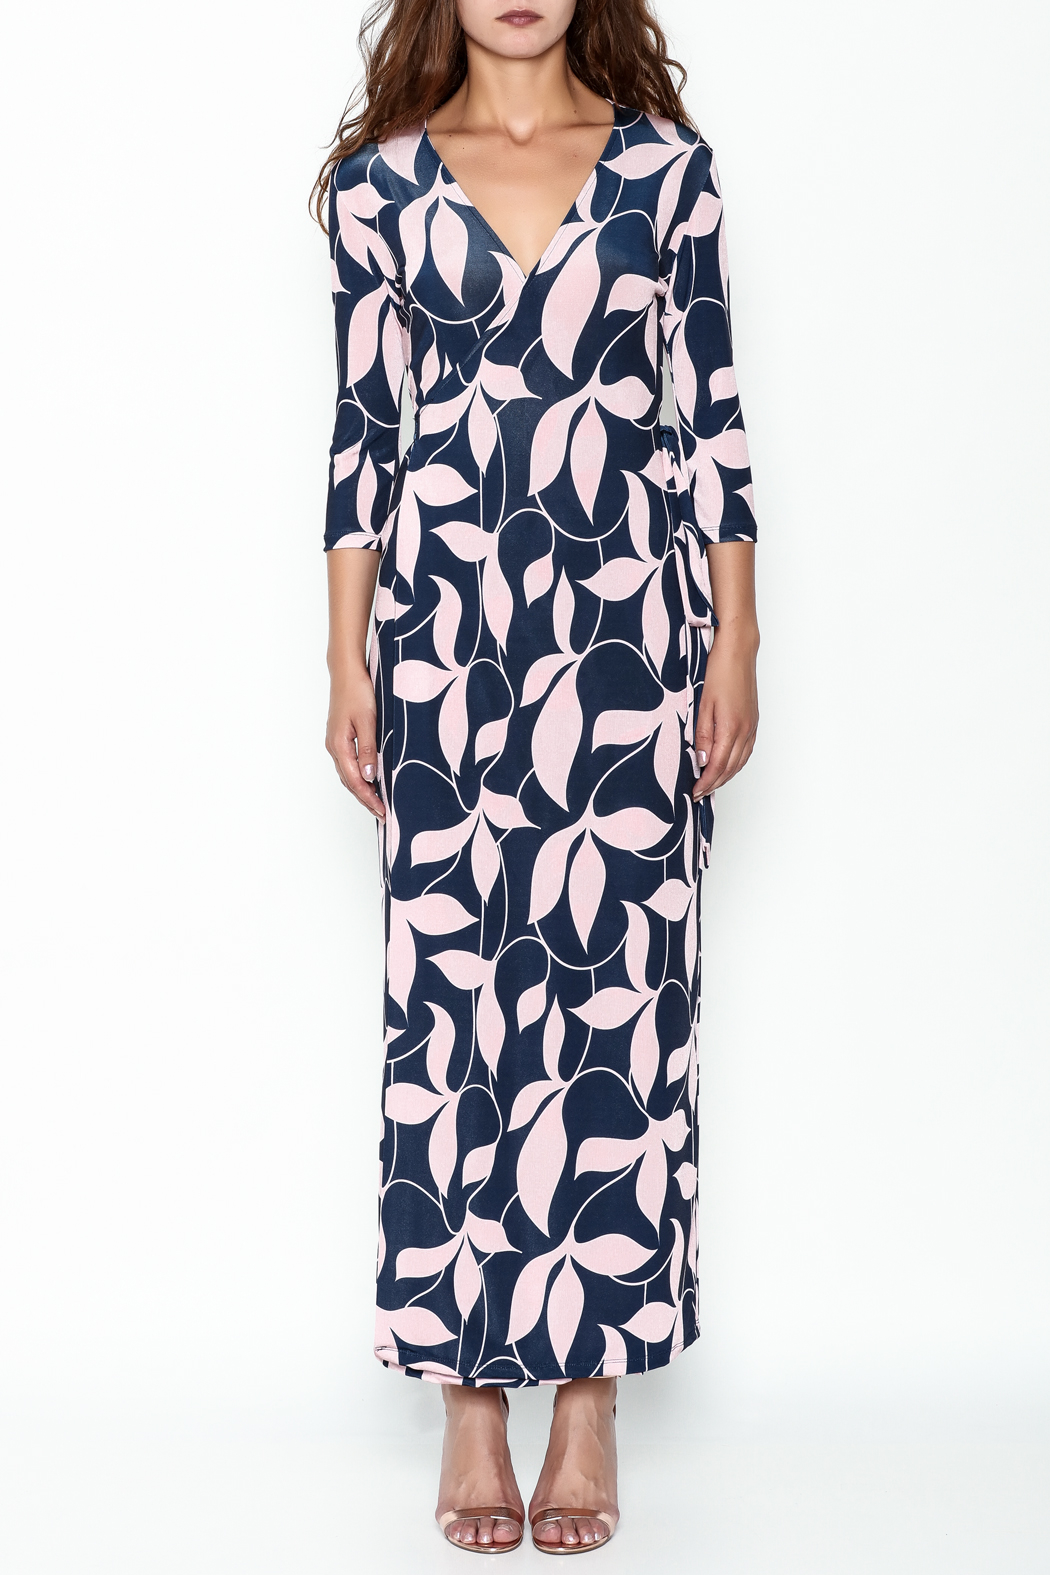 Pinkyotto Mod Floral Wrap Dress - Front Full Image